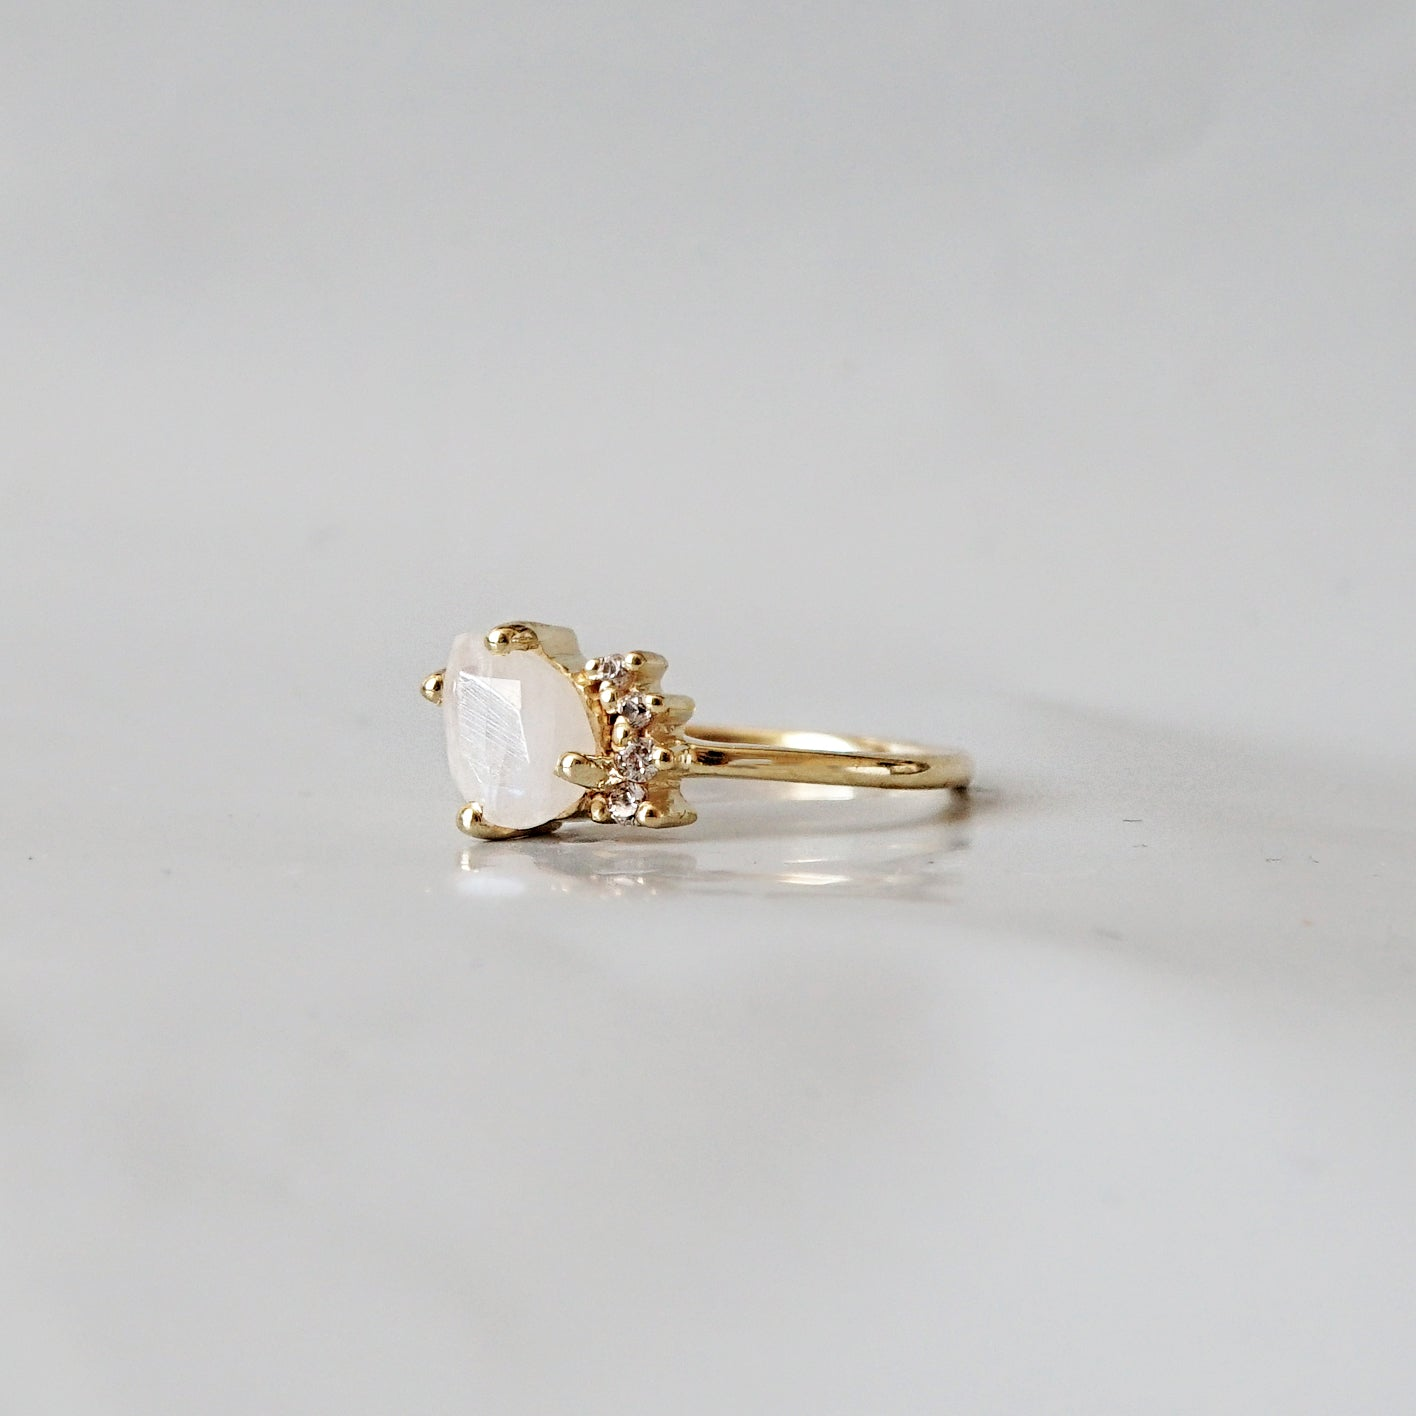 Moonstone Sweetheart Ring - Tippy Taste Jewelry